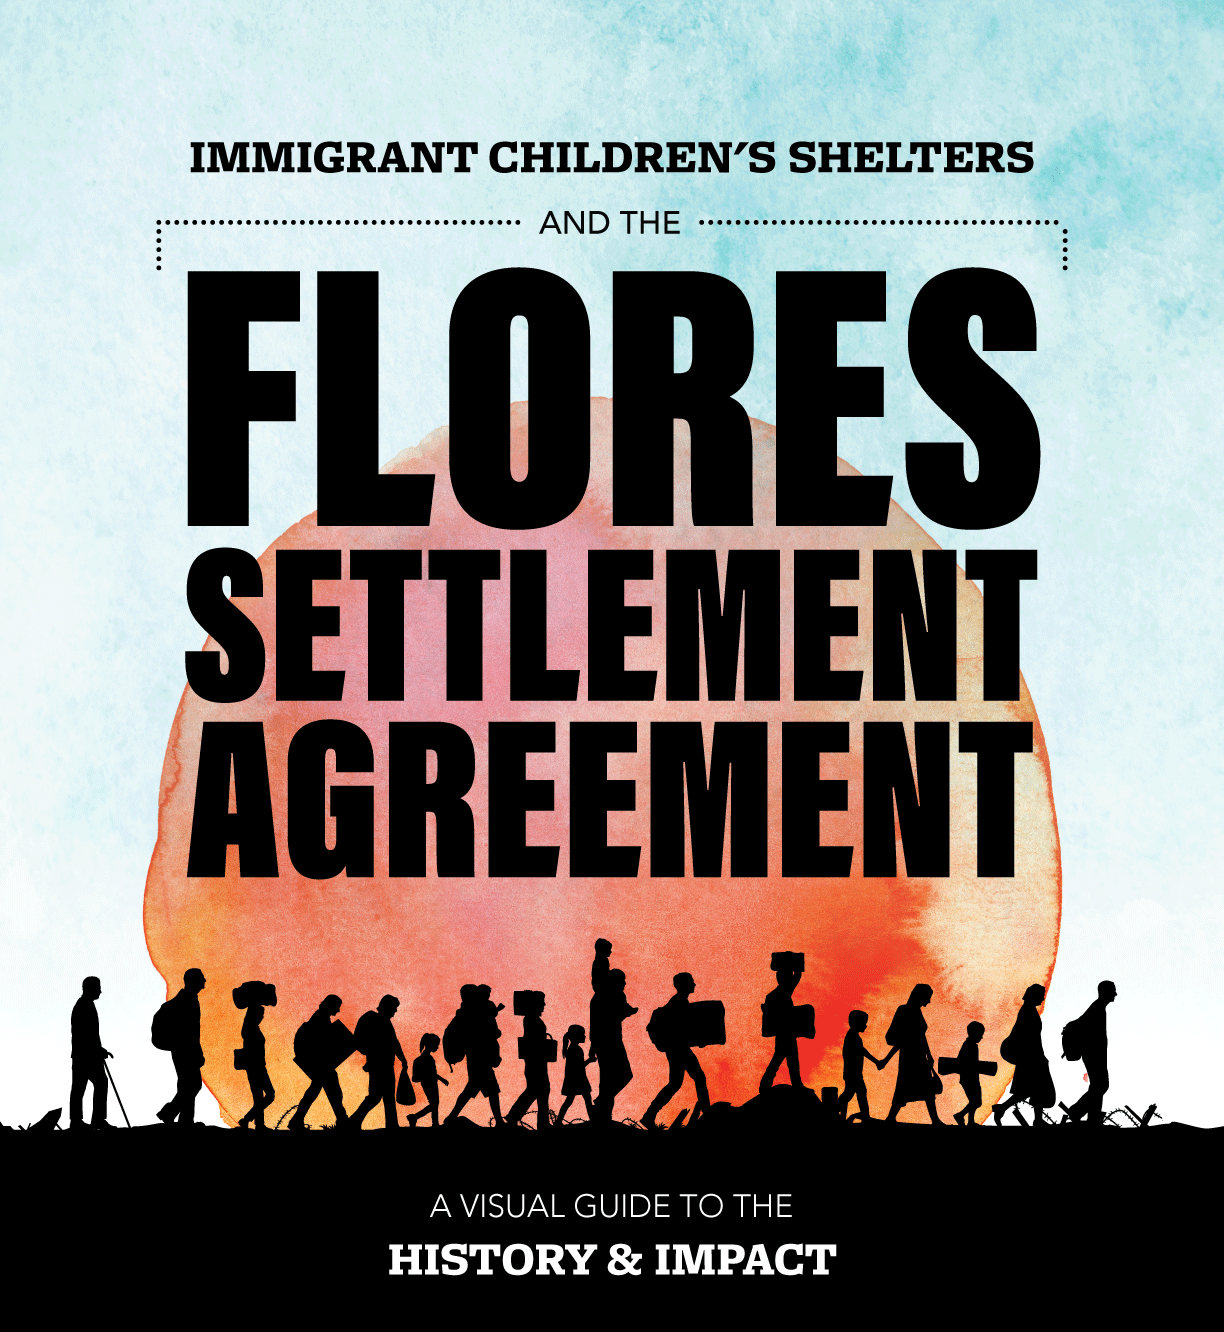 Immigrant children's shelters and the Flores Settlement Agreement. A visual guide to the history & impact